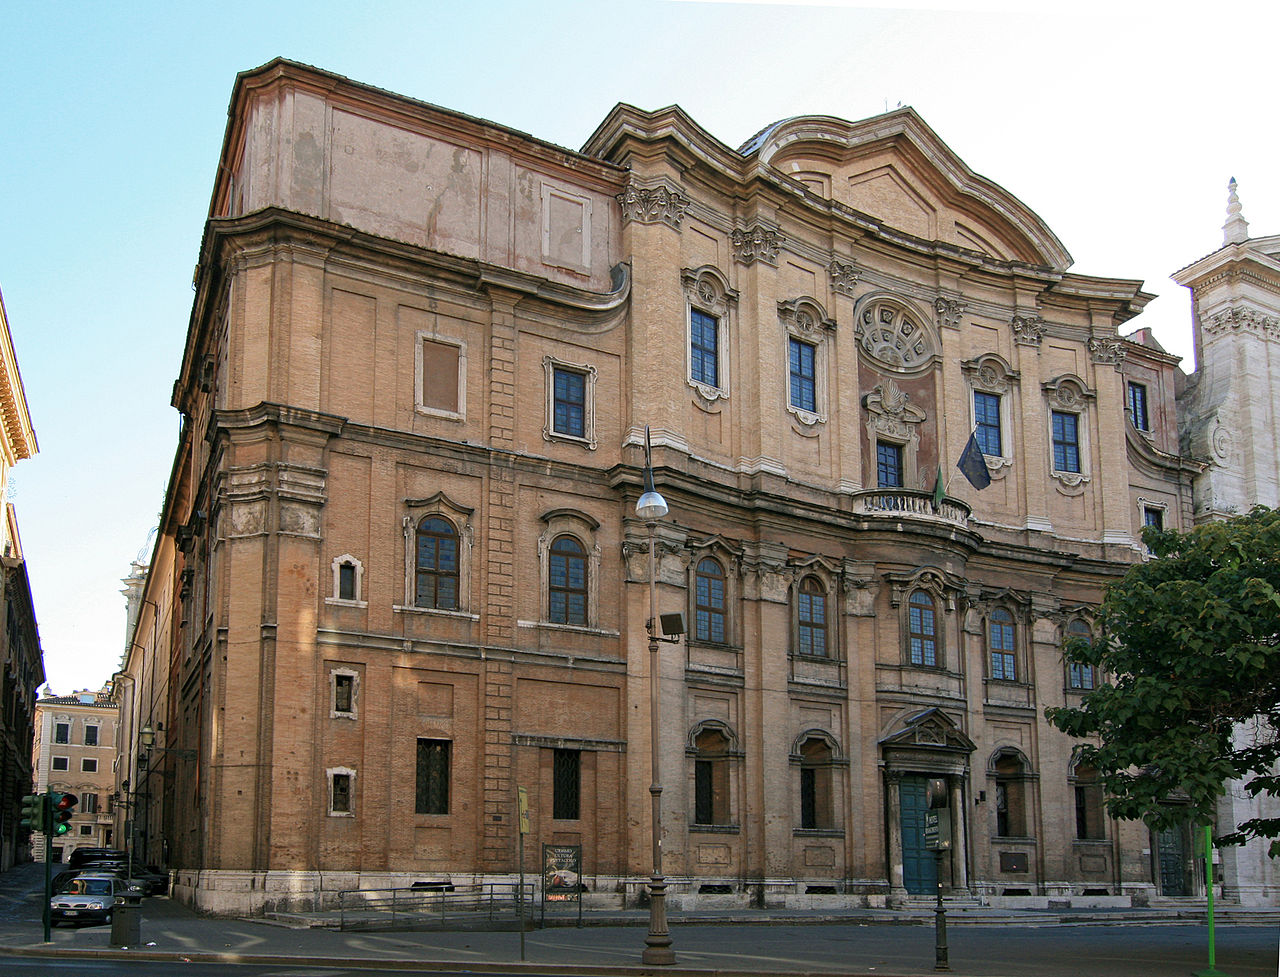 Facade of the Vallicelliana Library in Rome